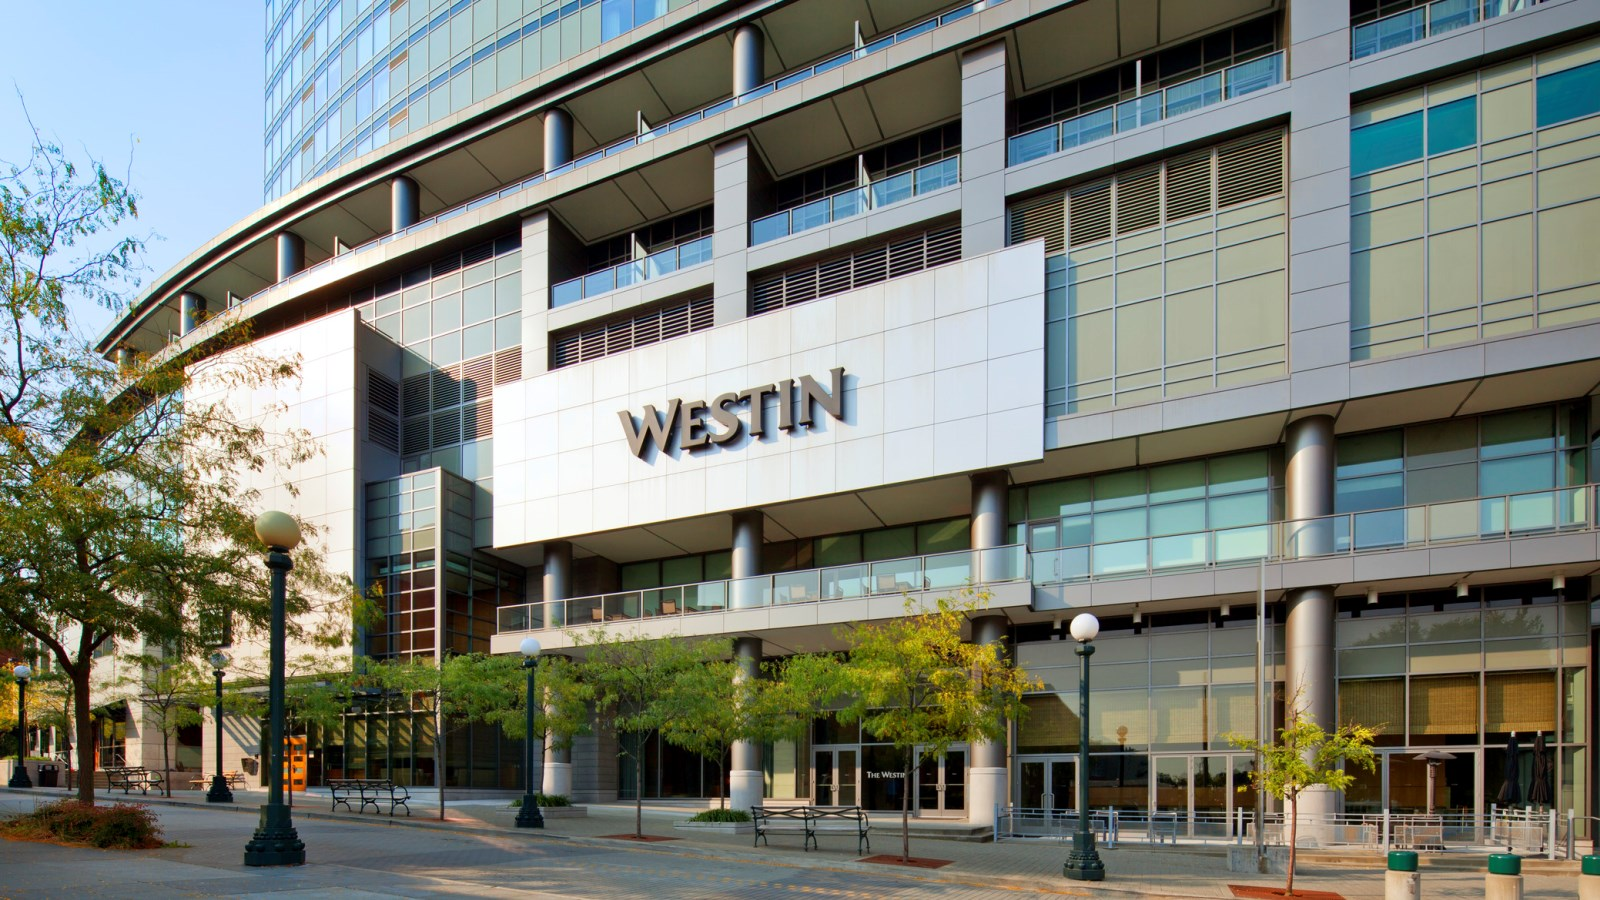 The Westin Bellevue Exterior